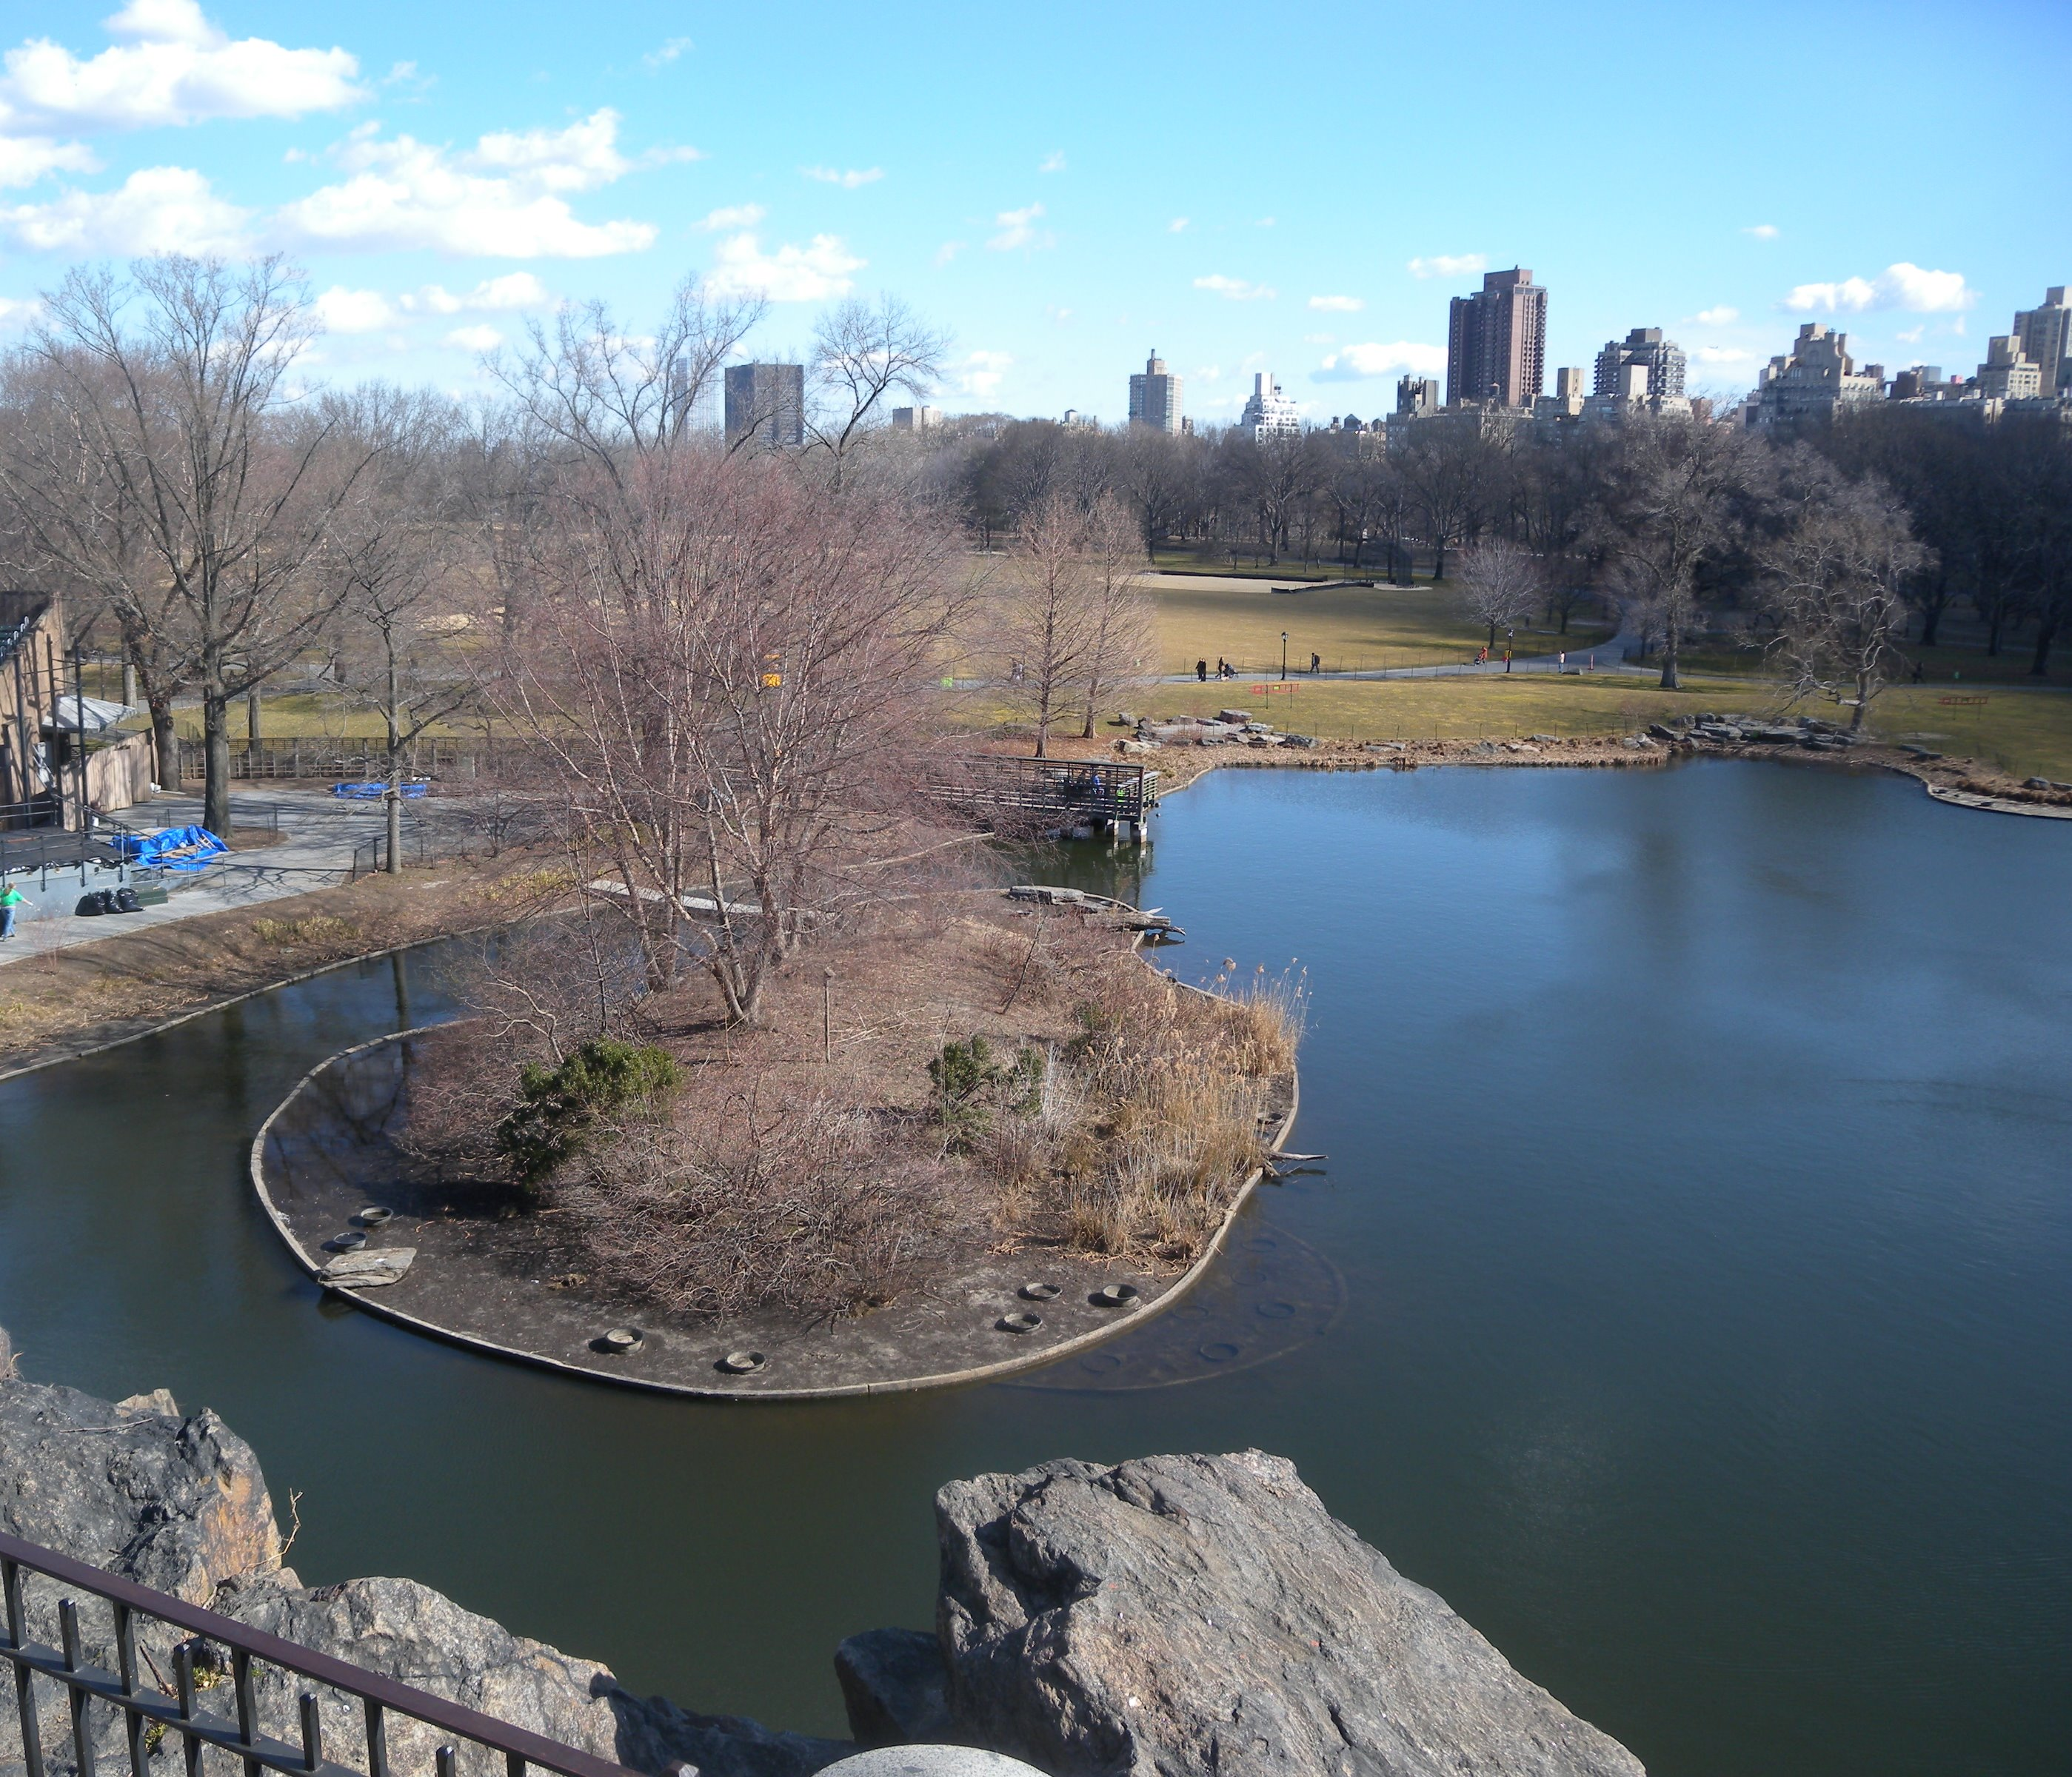 You can get here with your Central park bike rental, but you can't fish here.